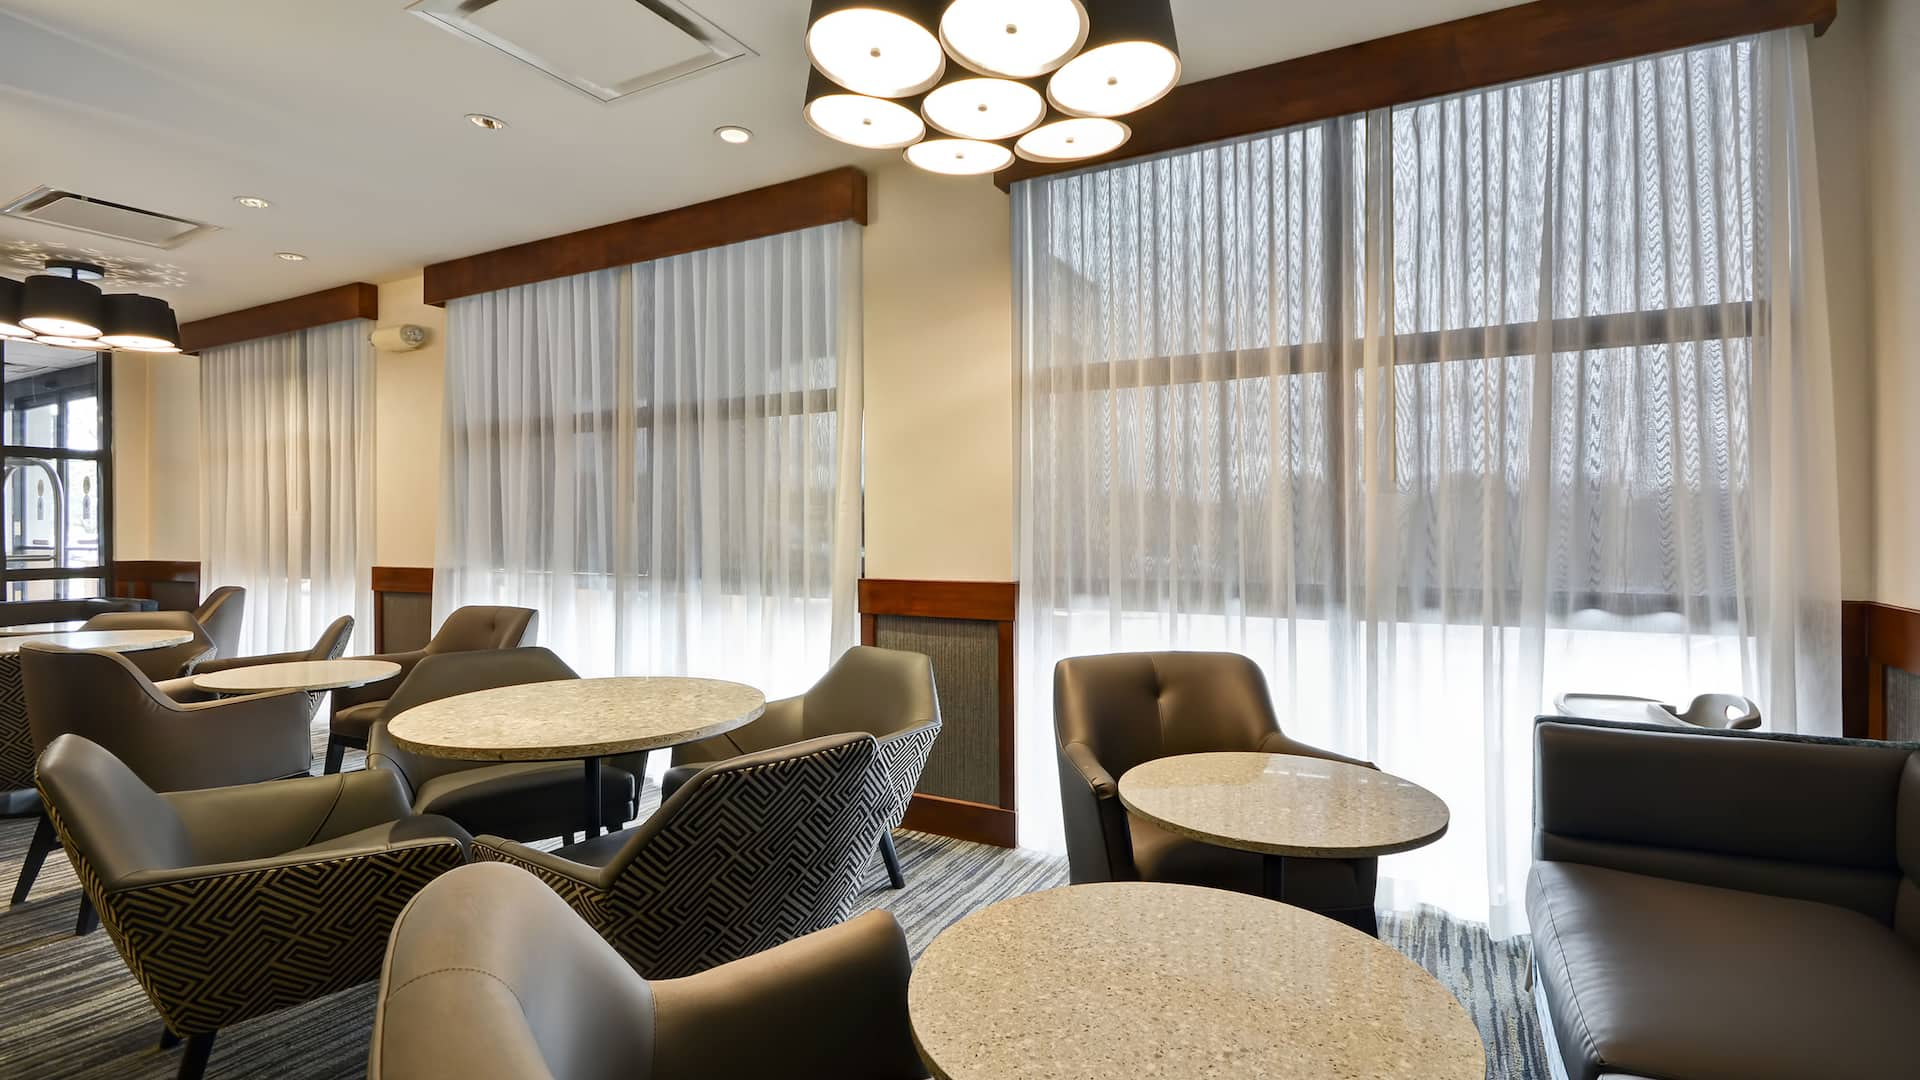 Hyatt Place Kansas City / Overland Park / Metcalf Hotel Lobby Window Seats